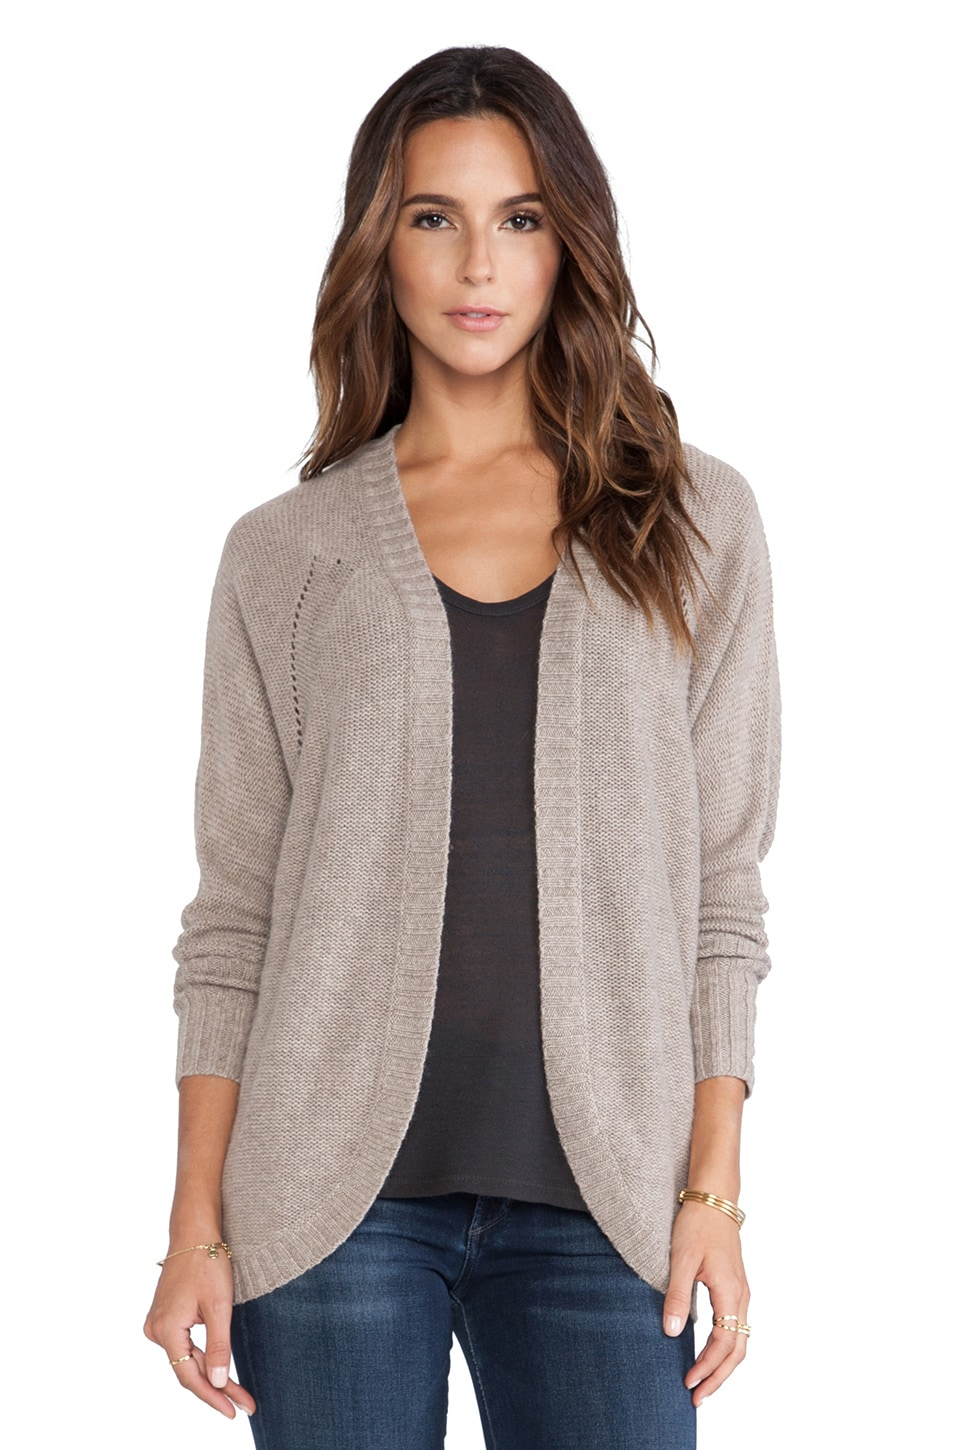 Autumn Cashmere Open Cocoon Duster Sweater in Stone